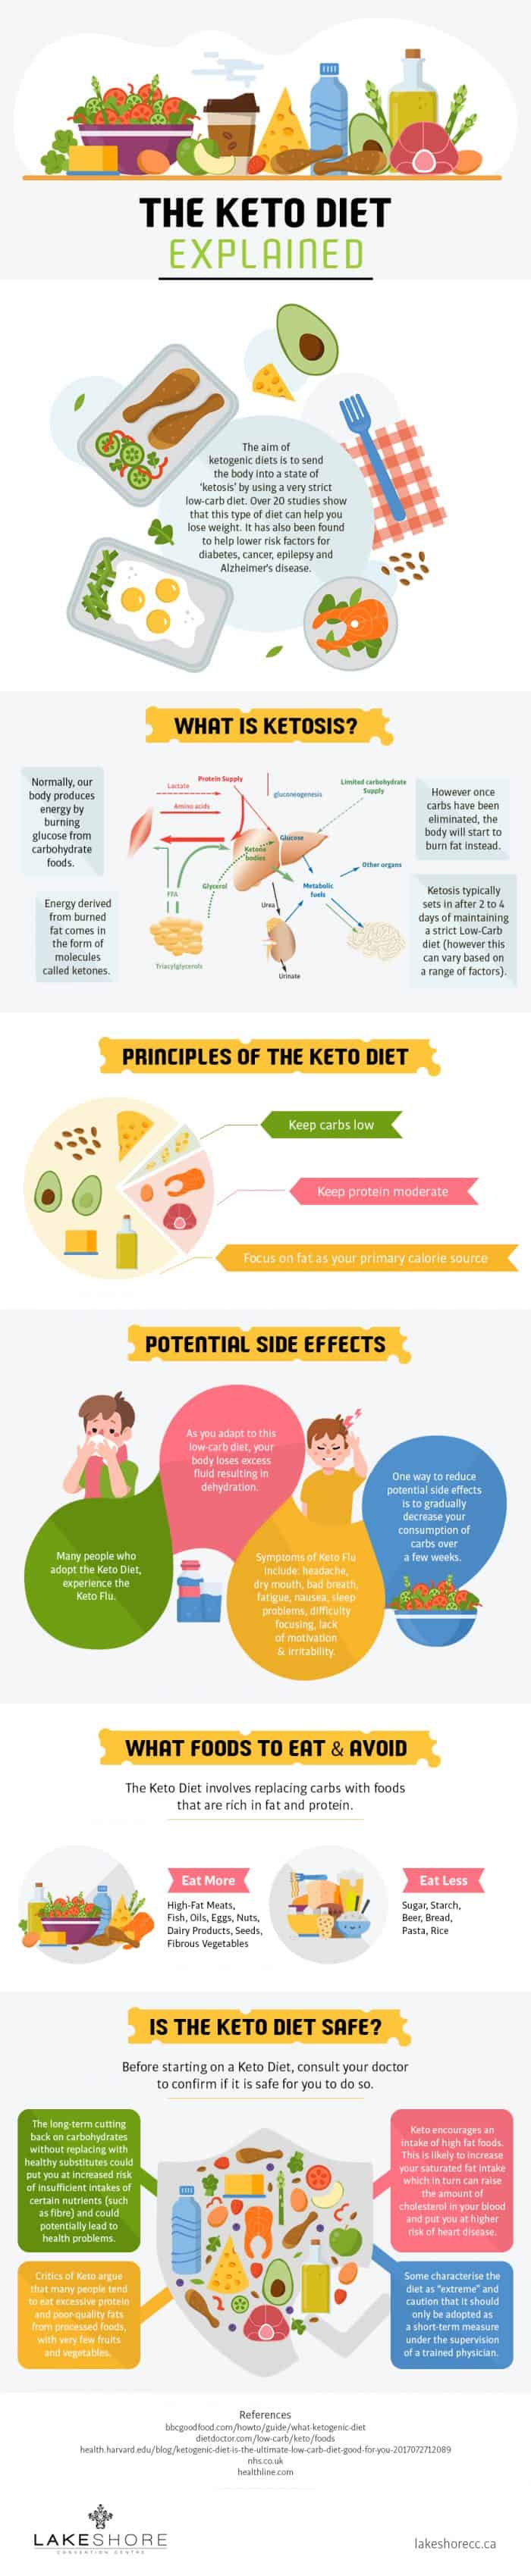 Keto diets and how to use it